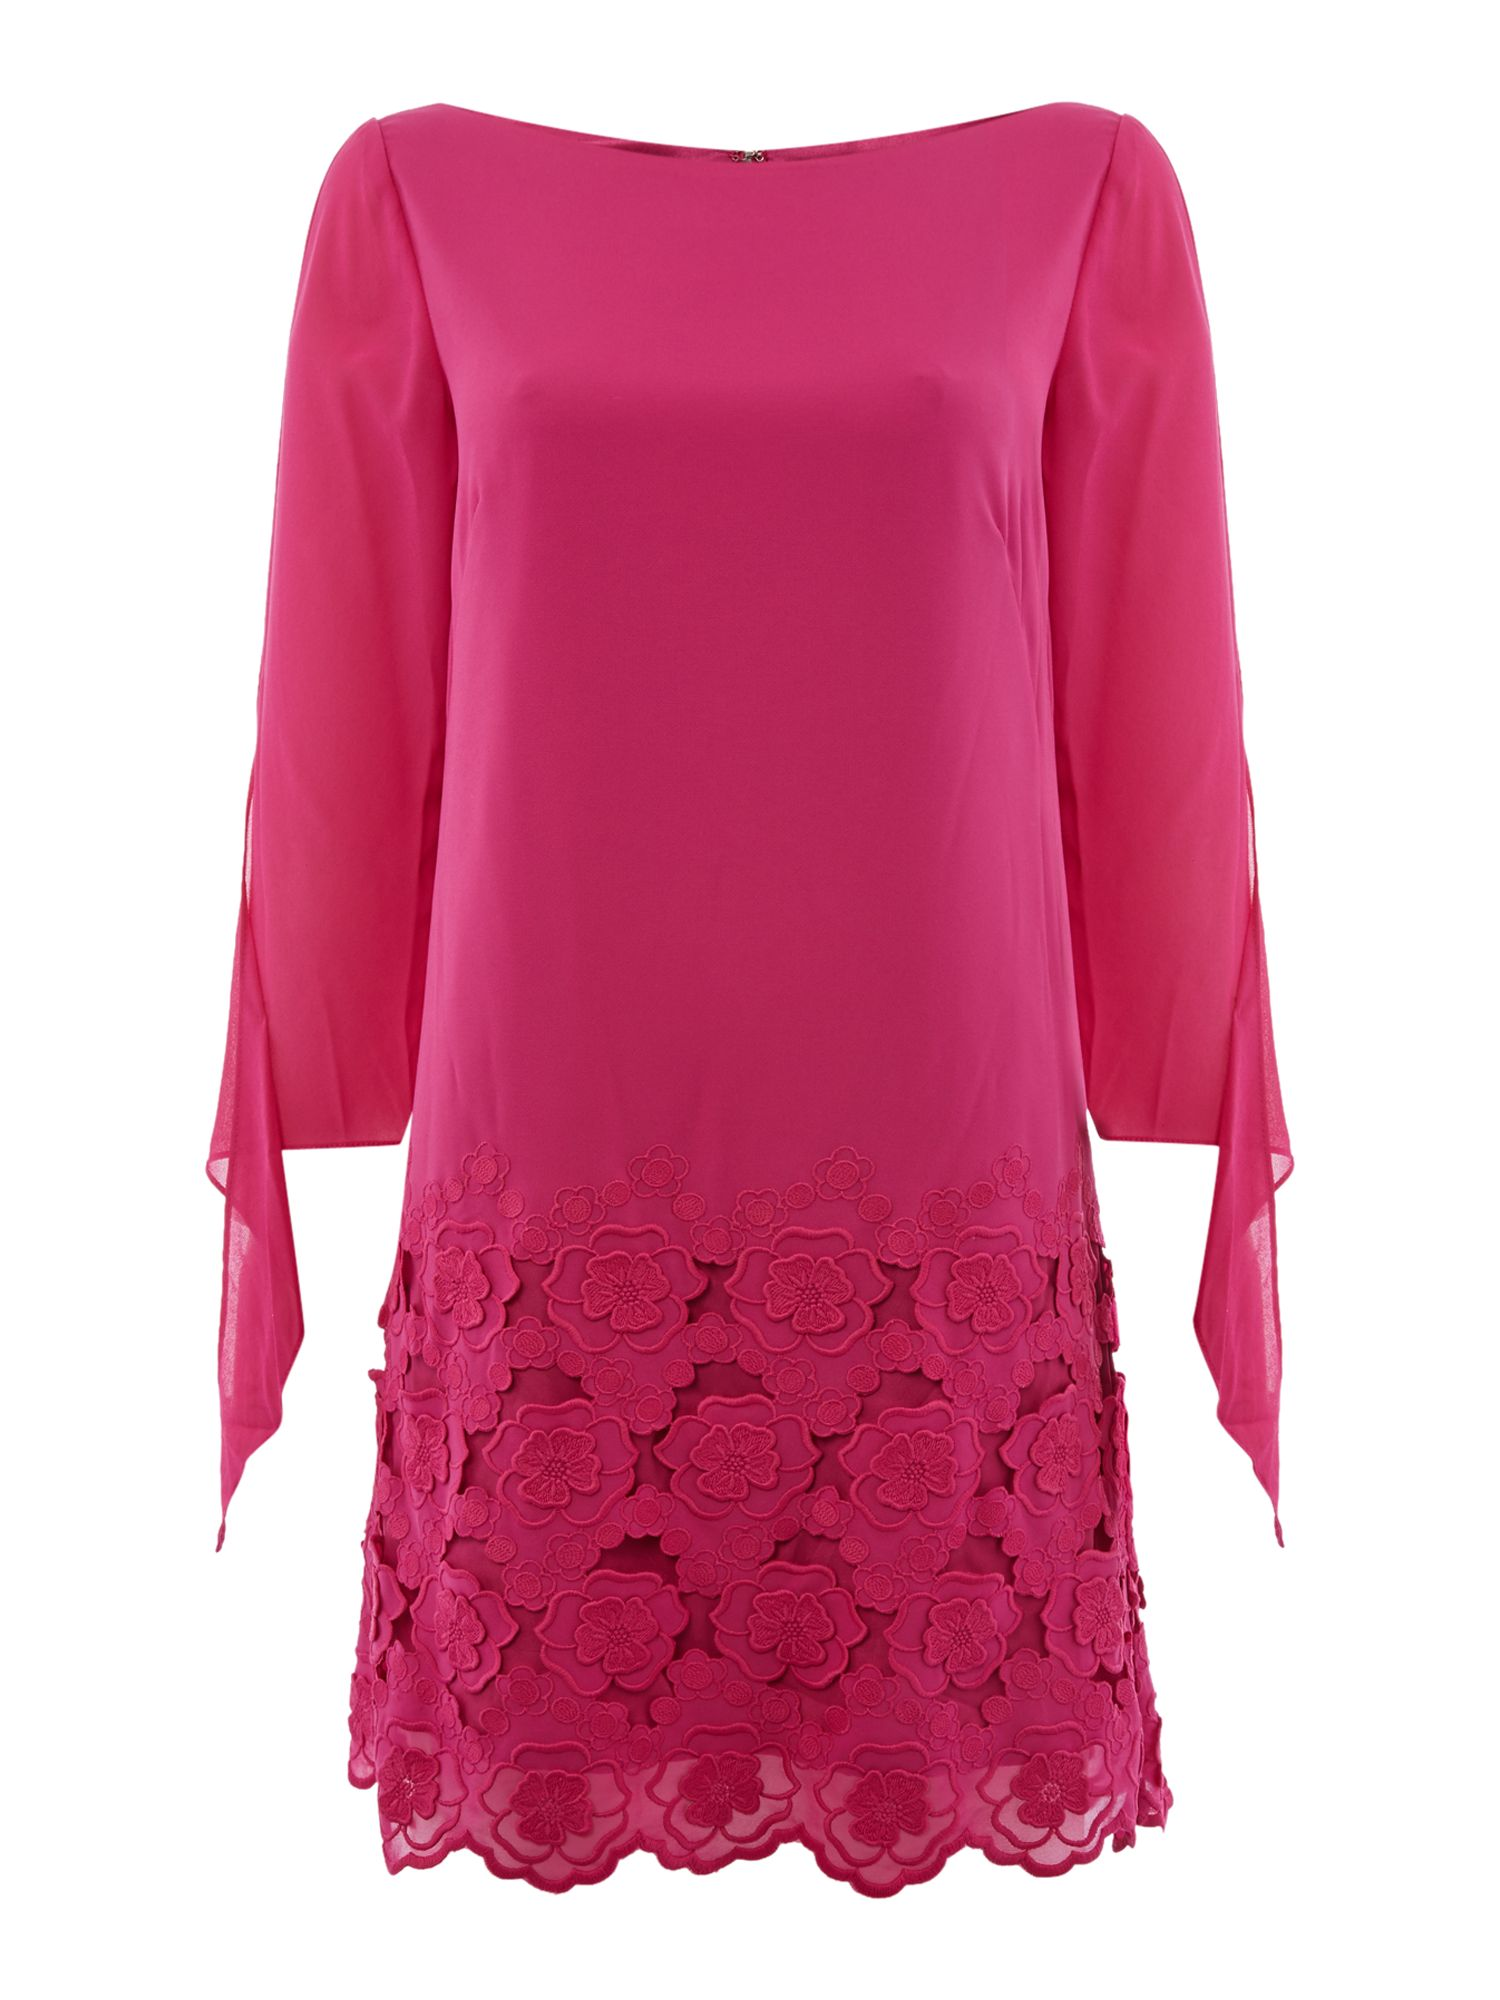 Tahari ASL Tied Sleeve Embroidered Chiffon Dress, Hot Pink